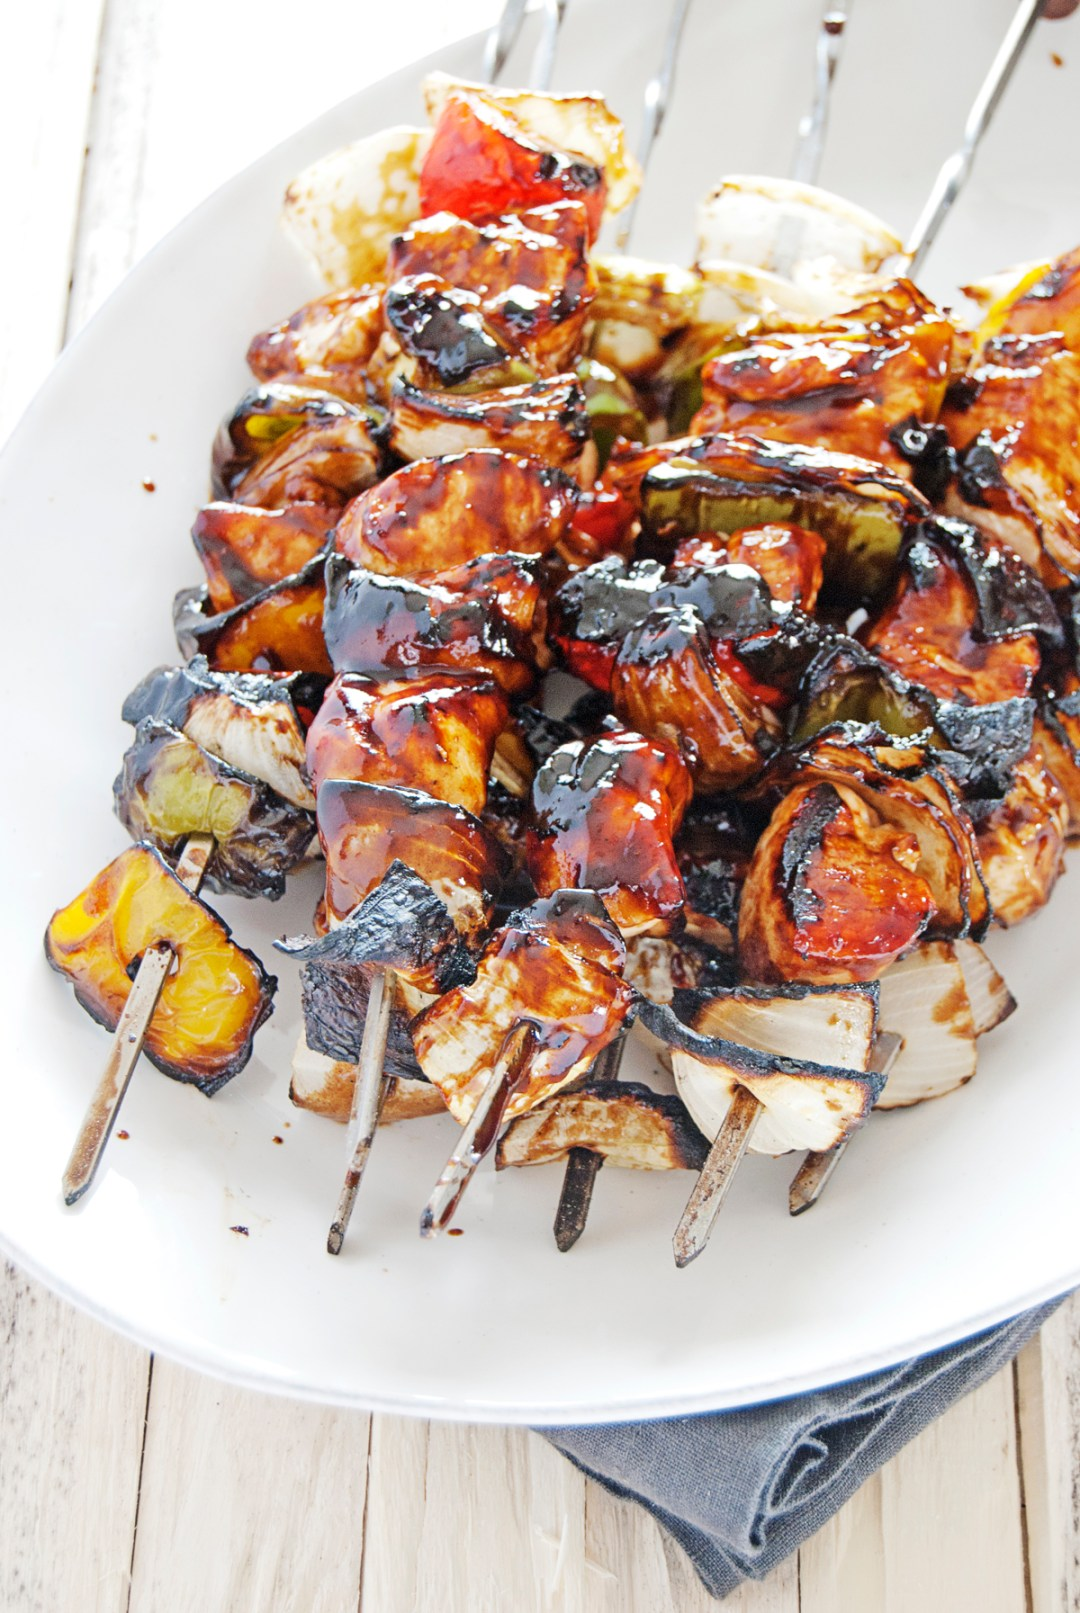 These balsamic BBQ chicken skewers are kabobs filled with juicy chicken, bell peppers, and onions, and glazed with a tasty balsamic BBQ sauce.